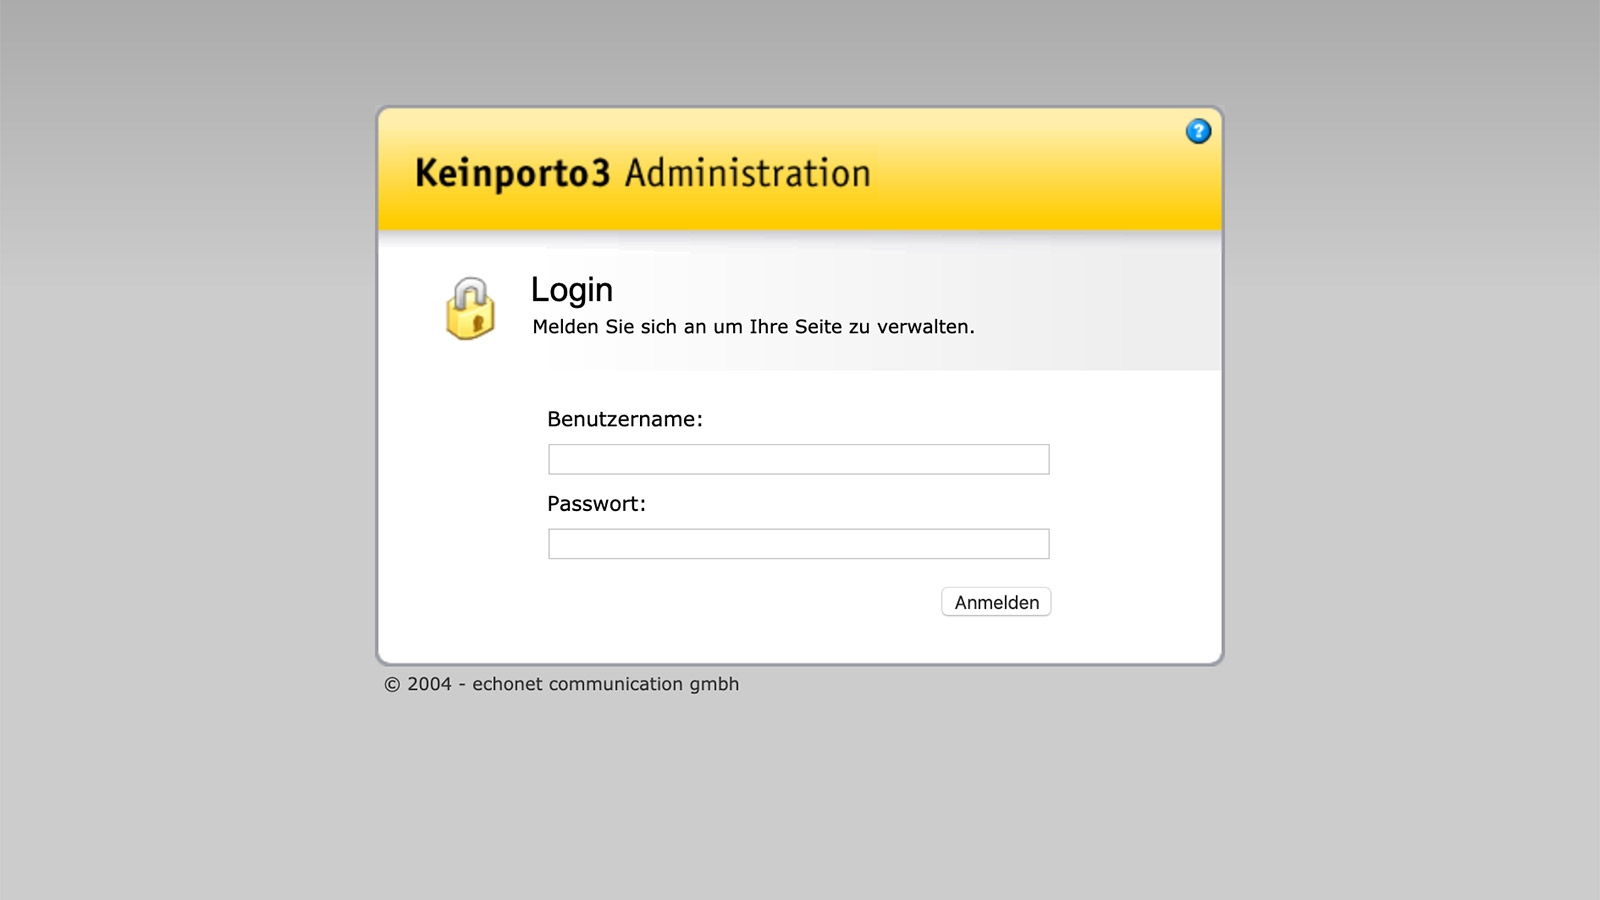 keinporto.com V3 (CMS Screen 01 / Login) © echonet communication